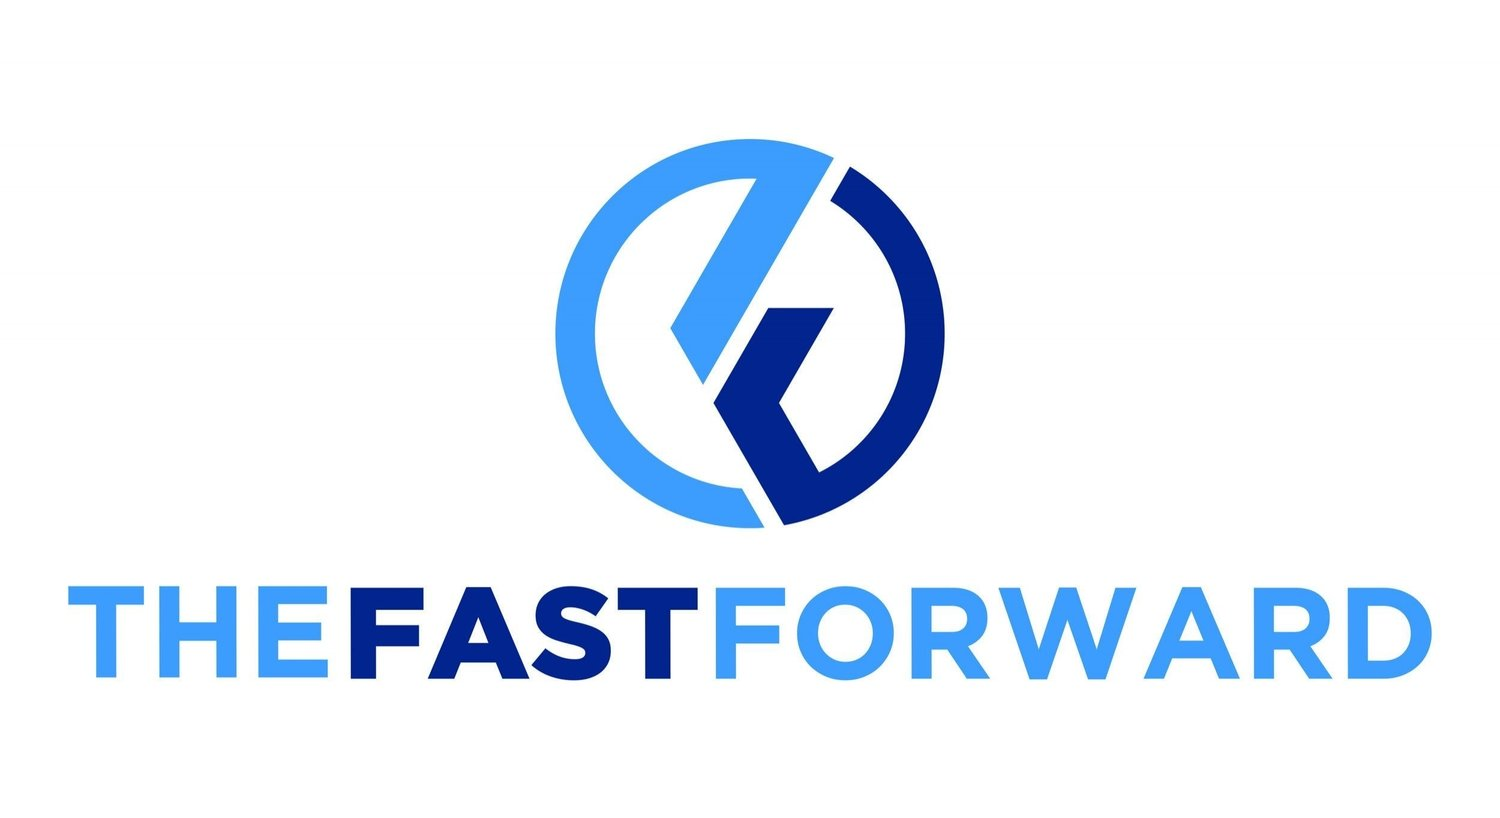 THE FAST FORWARD